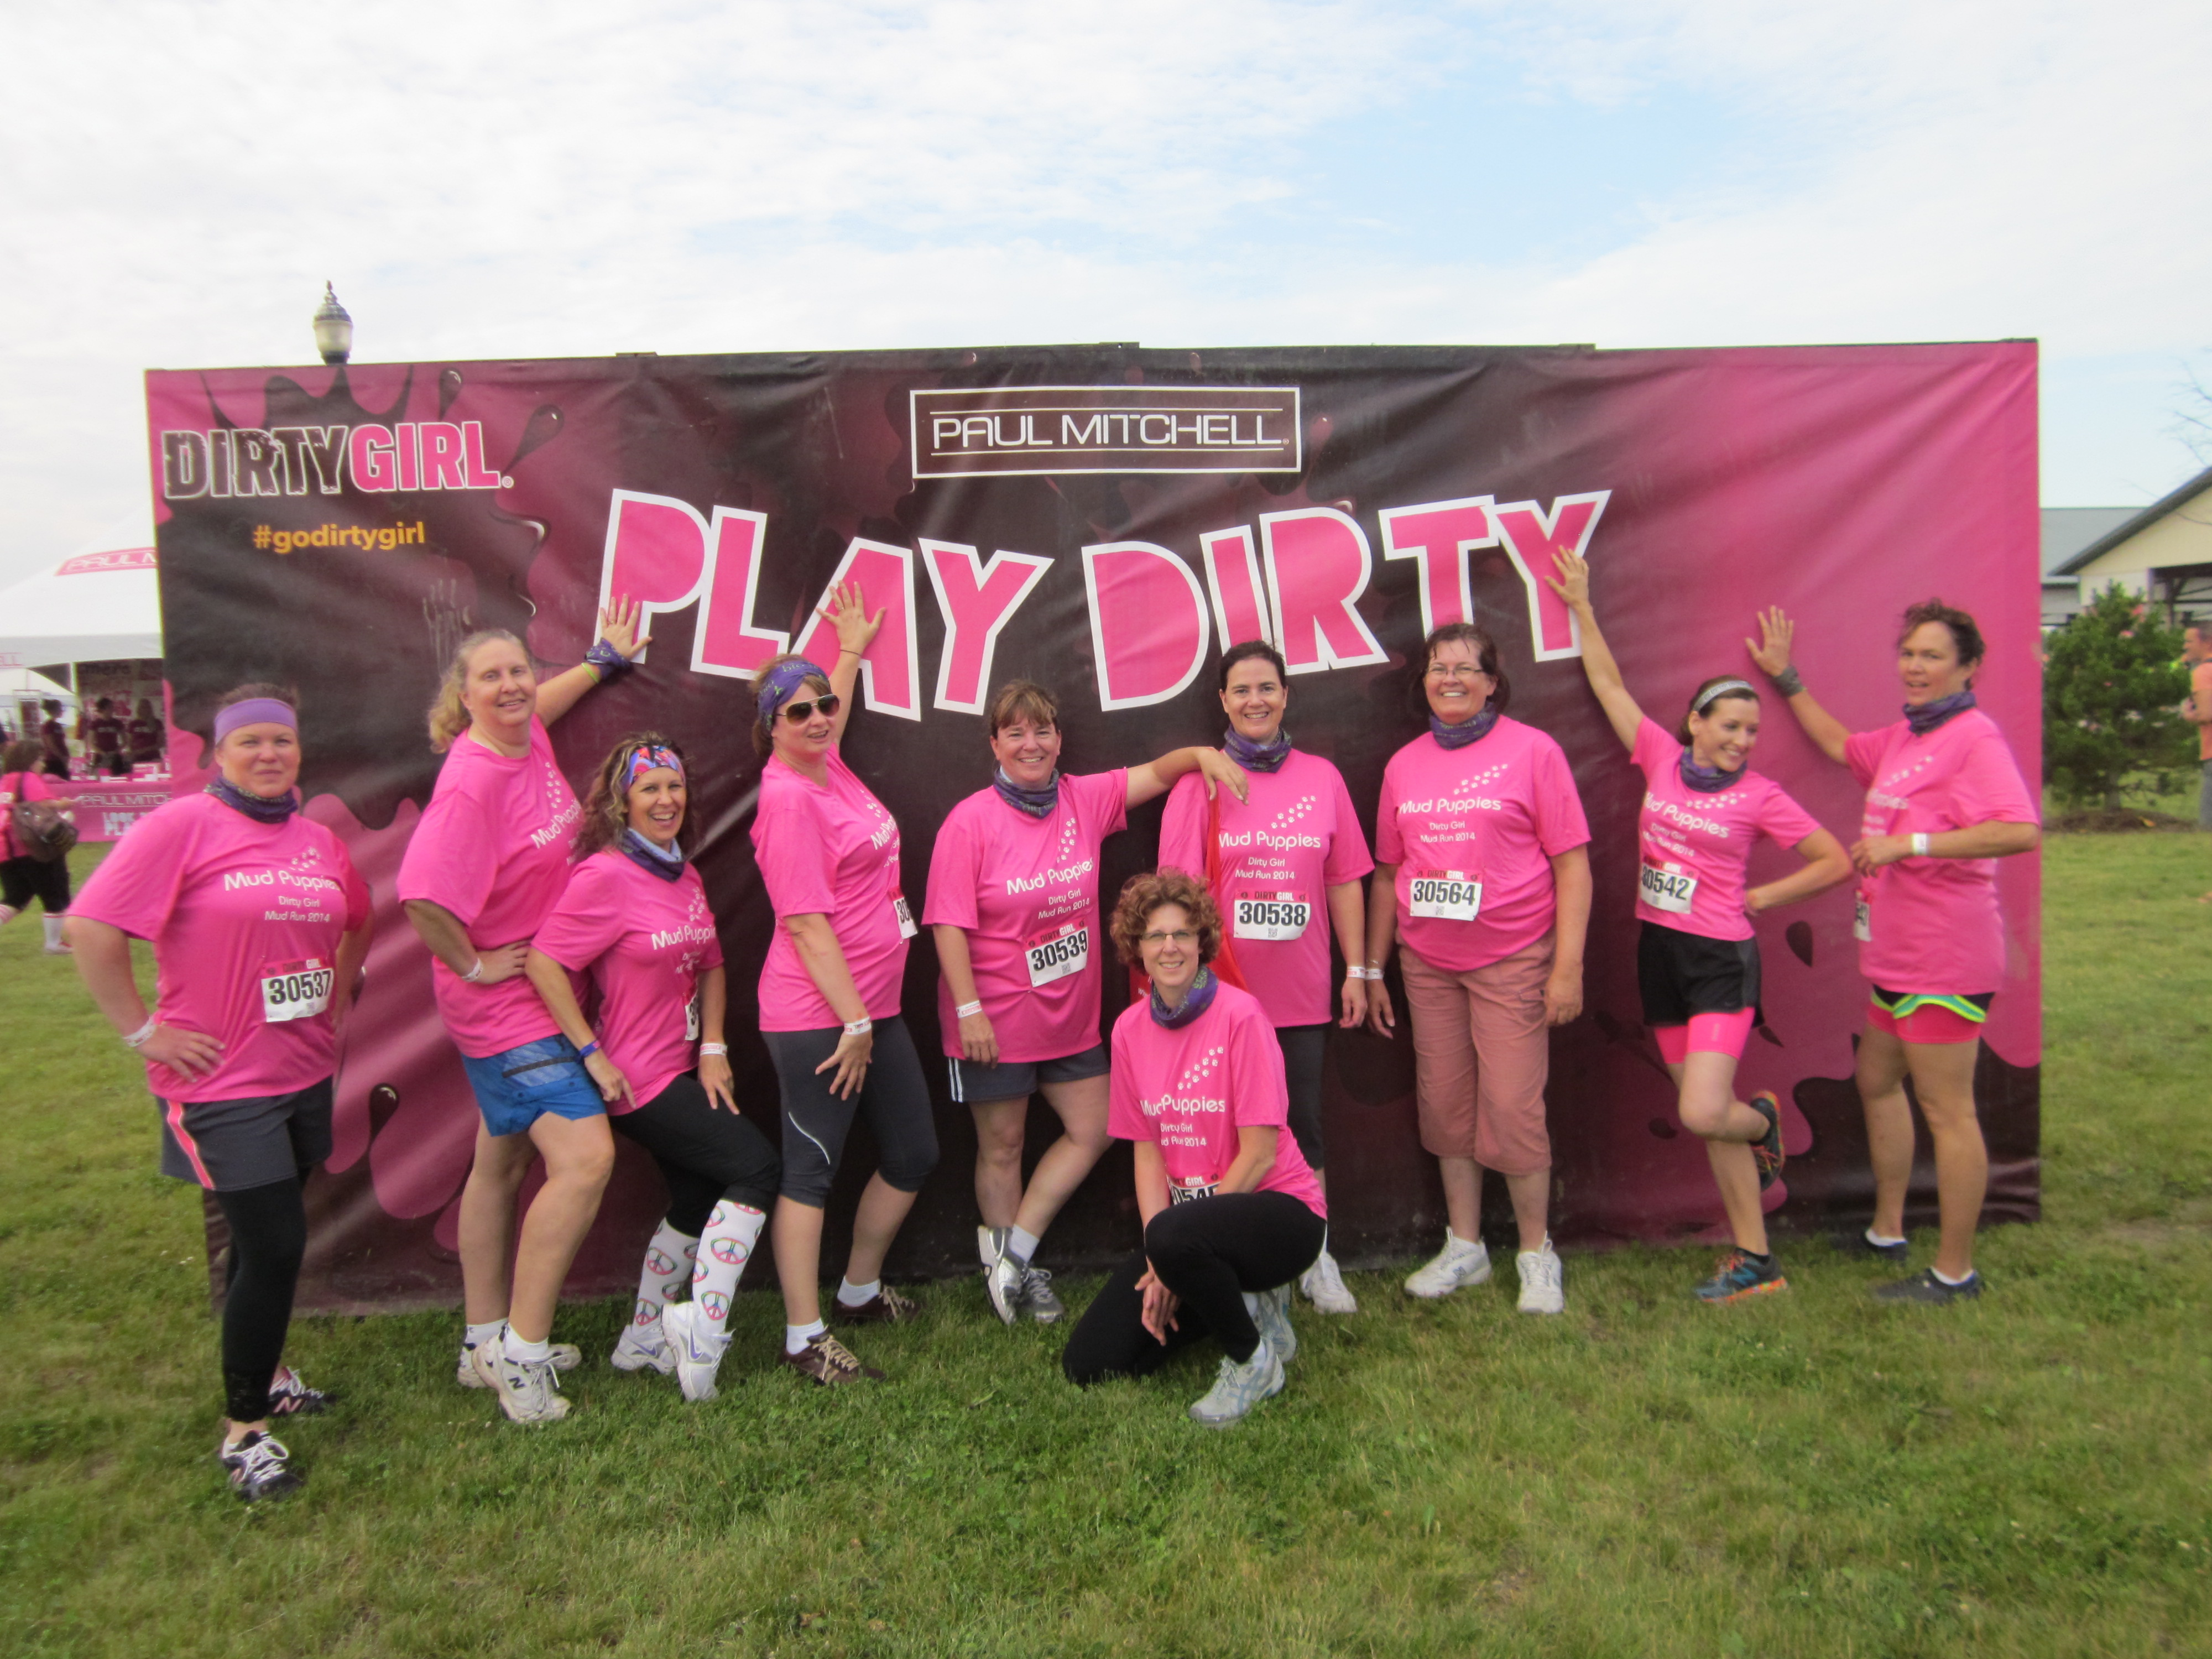 Design your own t shirt chicago - Team Mud Puppies Dirty Gril 2014 Chicago T Shirt Photo